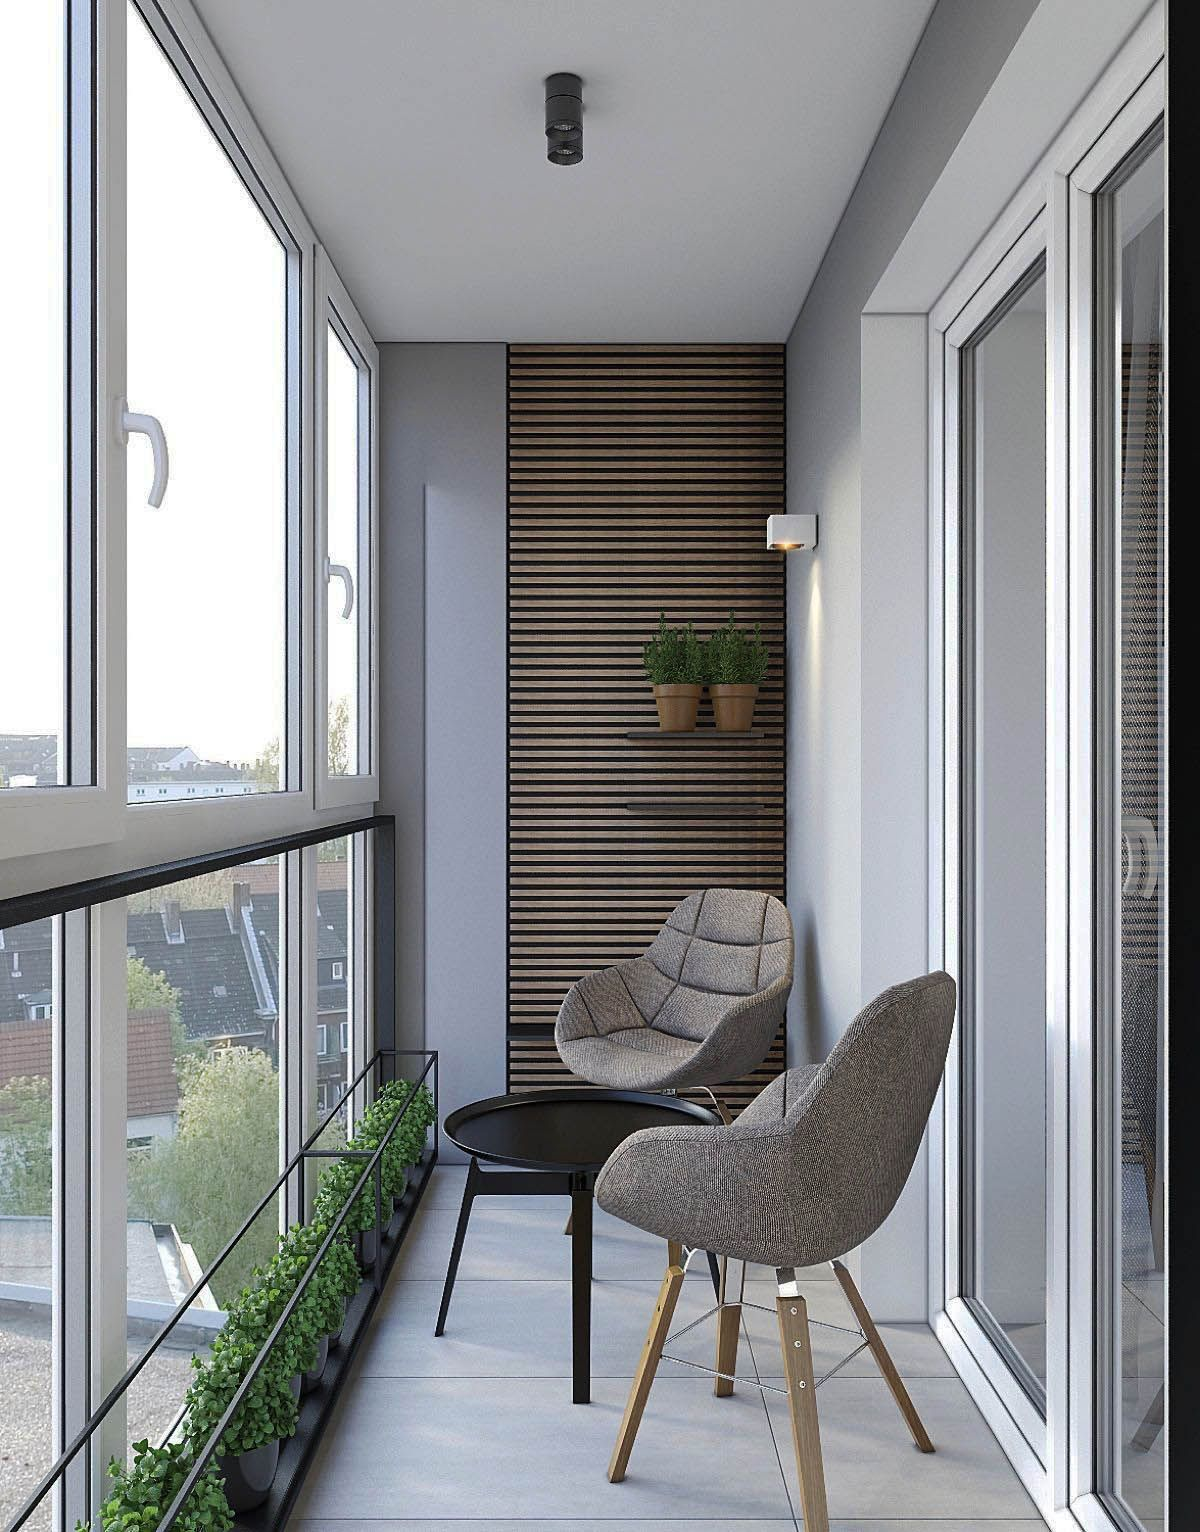 Little Center Apartment Layout Concepts 2019 Modern Tiny Clever With Images Apartment Balcony Decorating